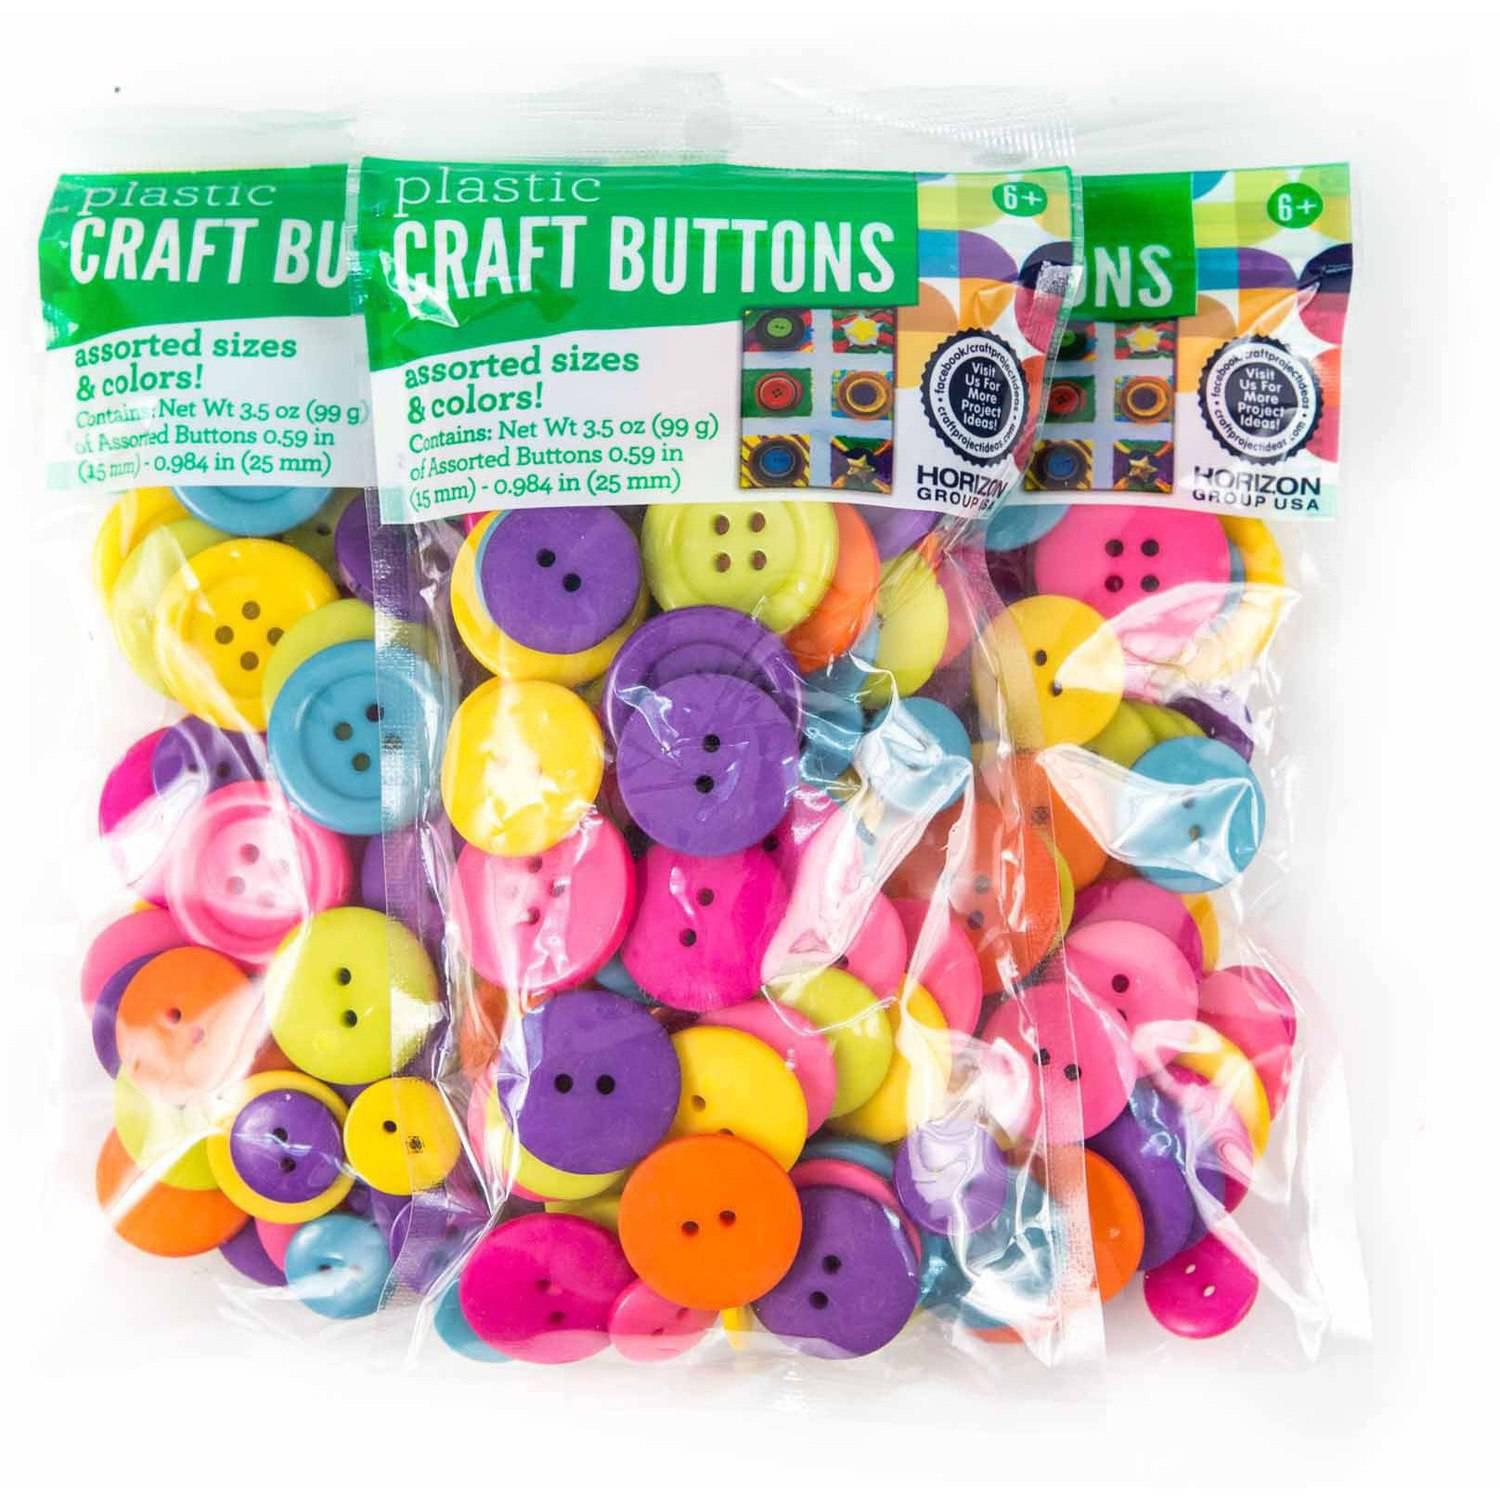 Plastic Craft Buttons Assorted Sizes & Colors, 3pk by Horizon Group USA